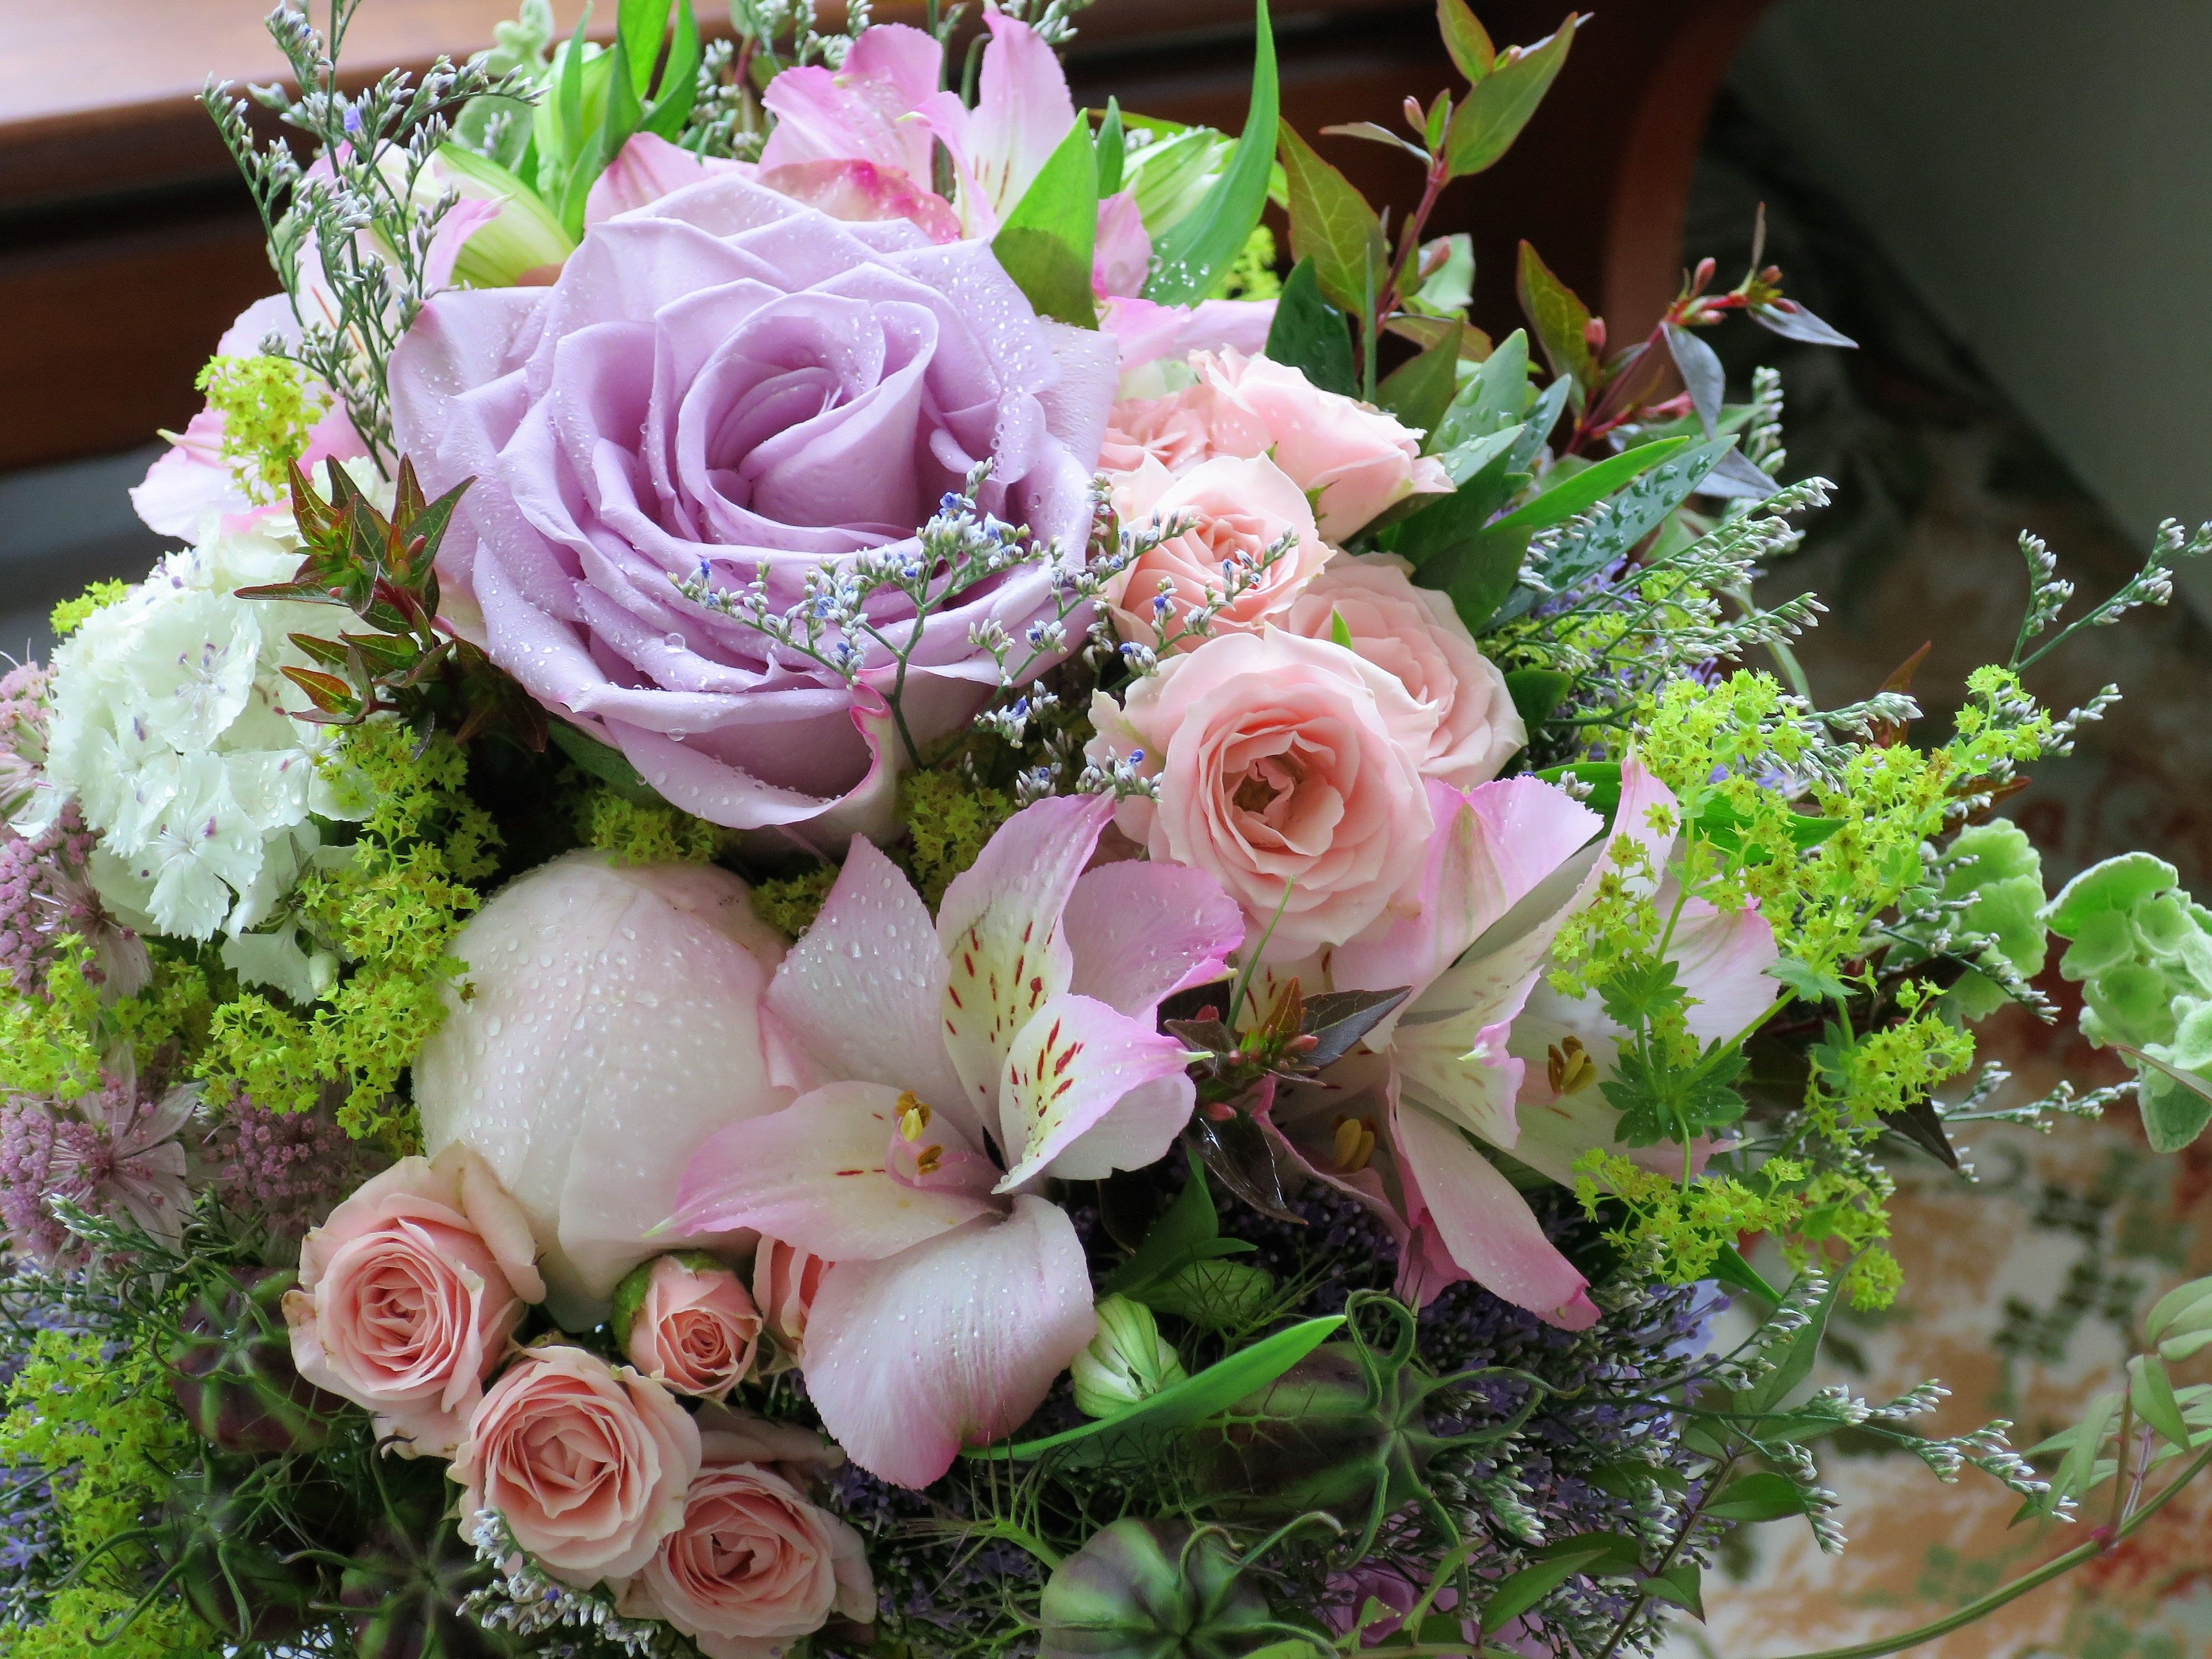 Rustic Bridal Bouquet With Dusky Pink And Peach Roses Among Lots Of